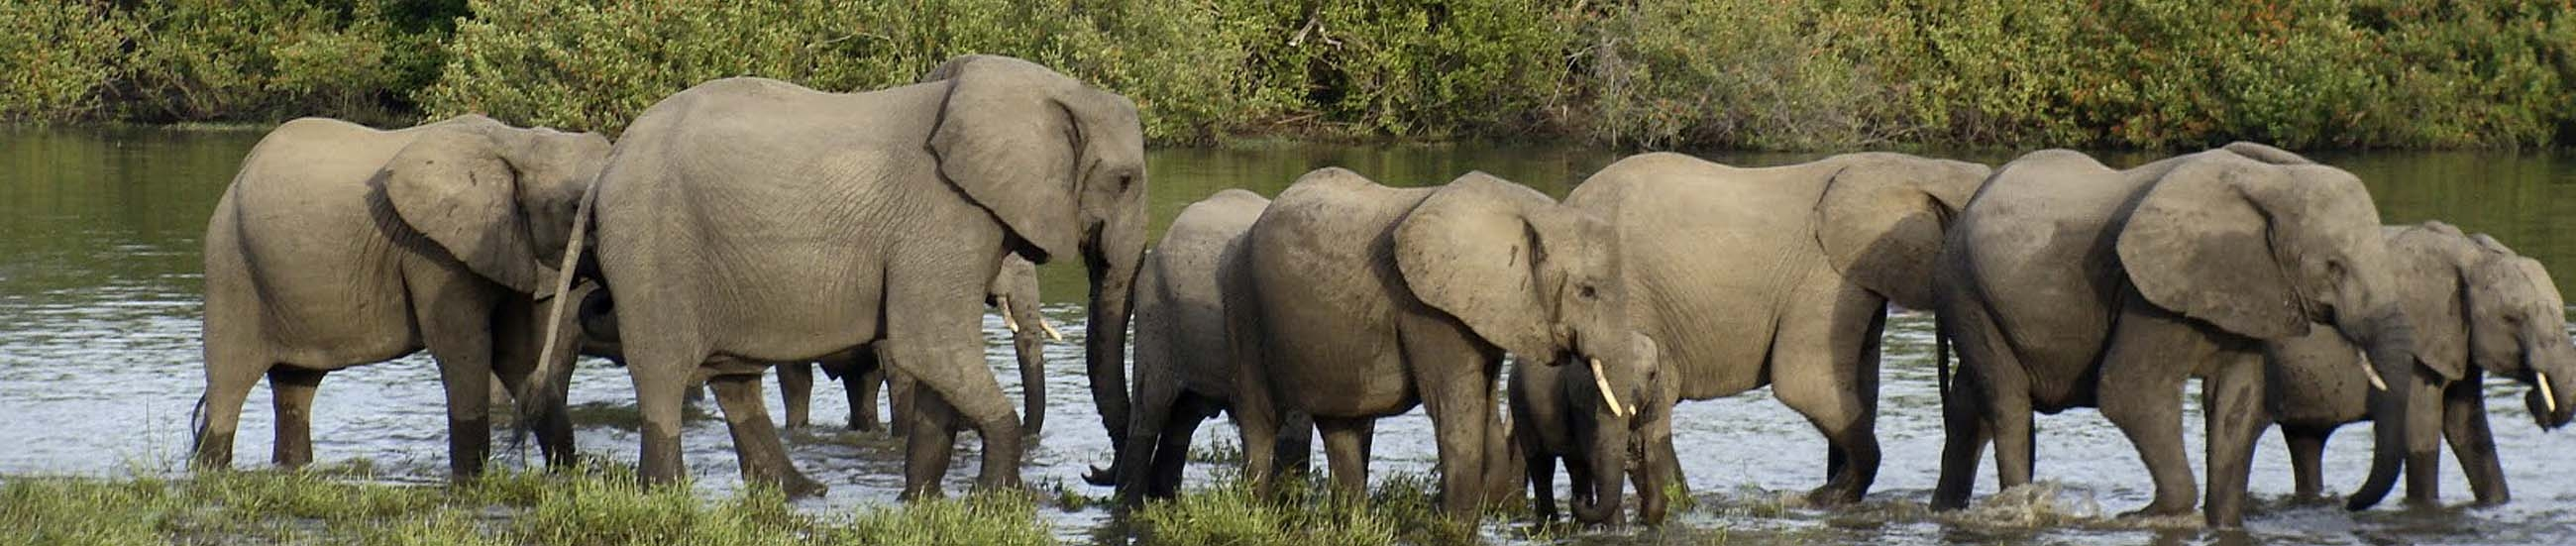 Elephants in Saadani | Experience Zanzibar Tours & Safaris